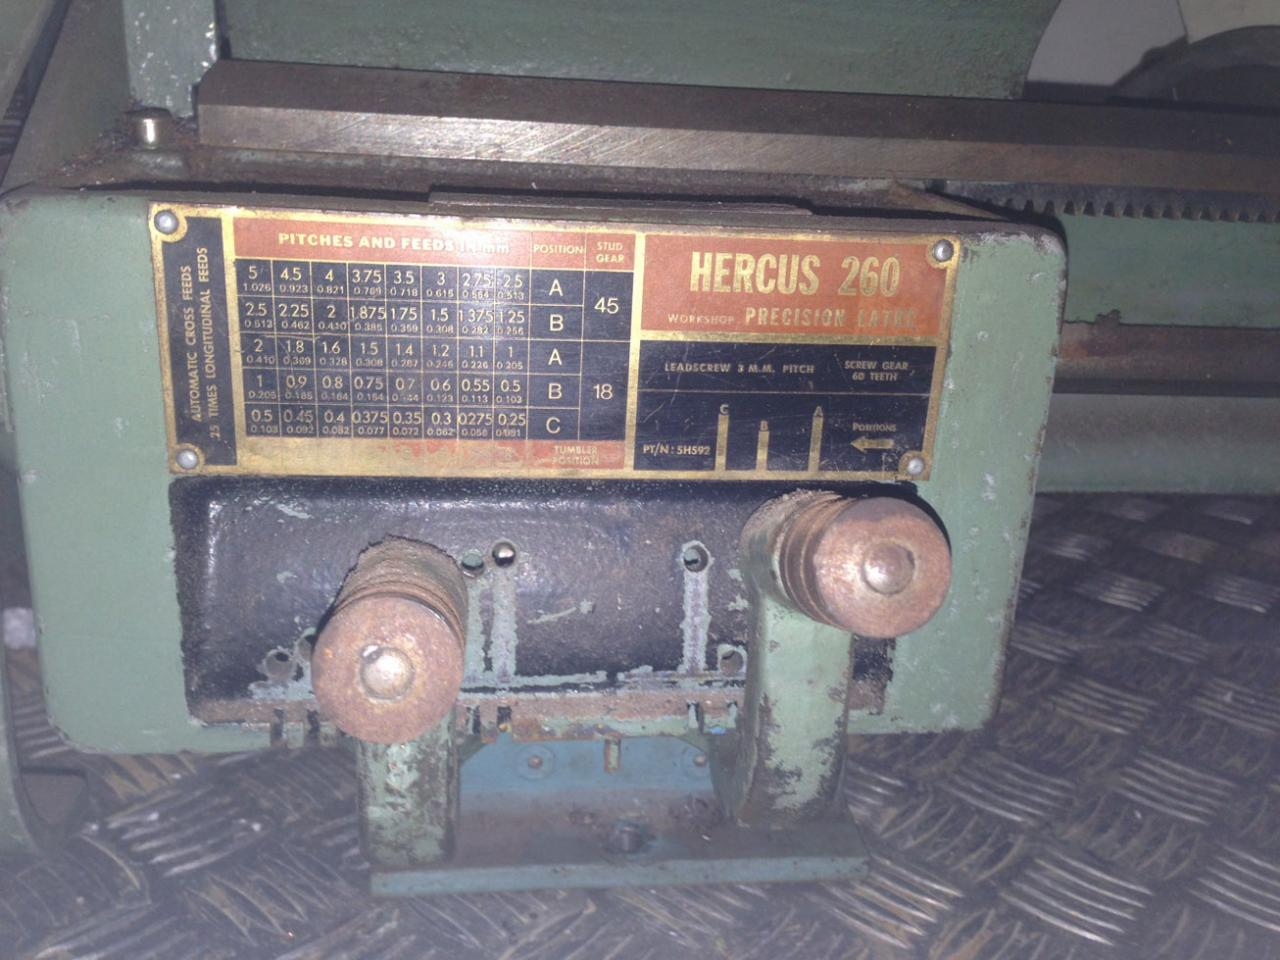 New (second hand) lathe for the shed  - OutdoorKing Repair Forum